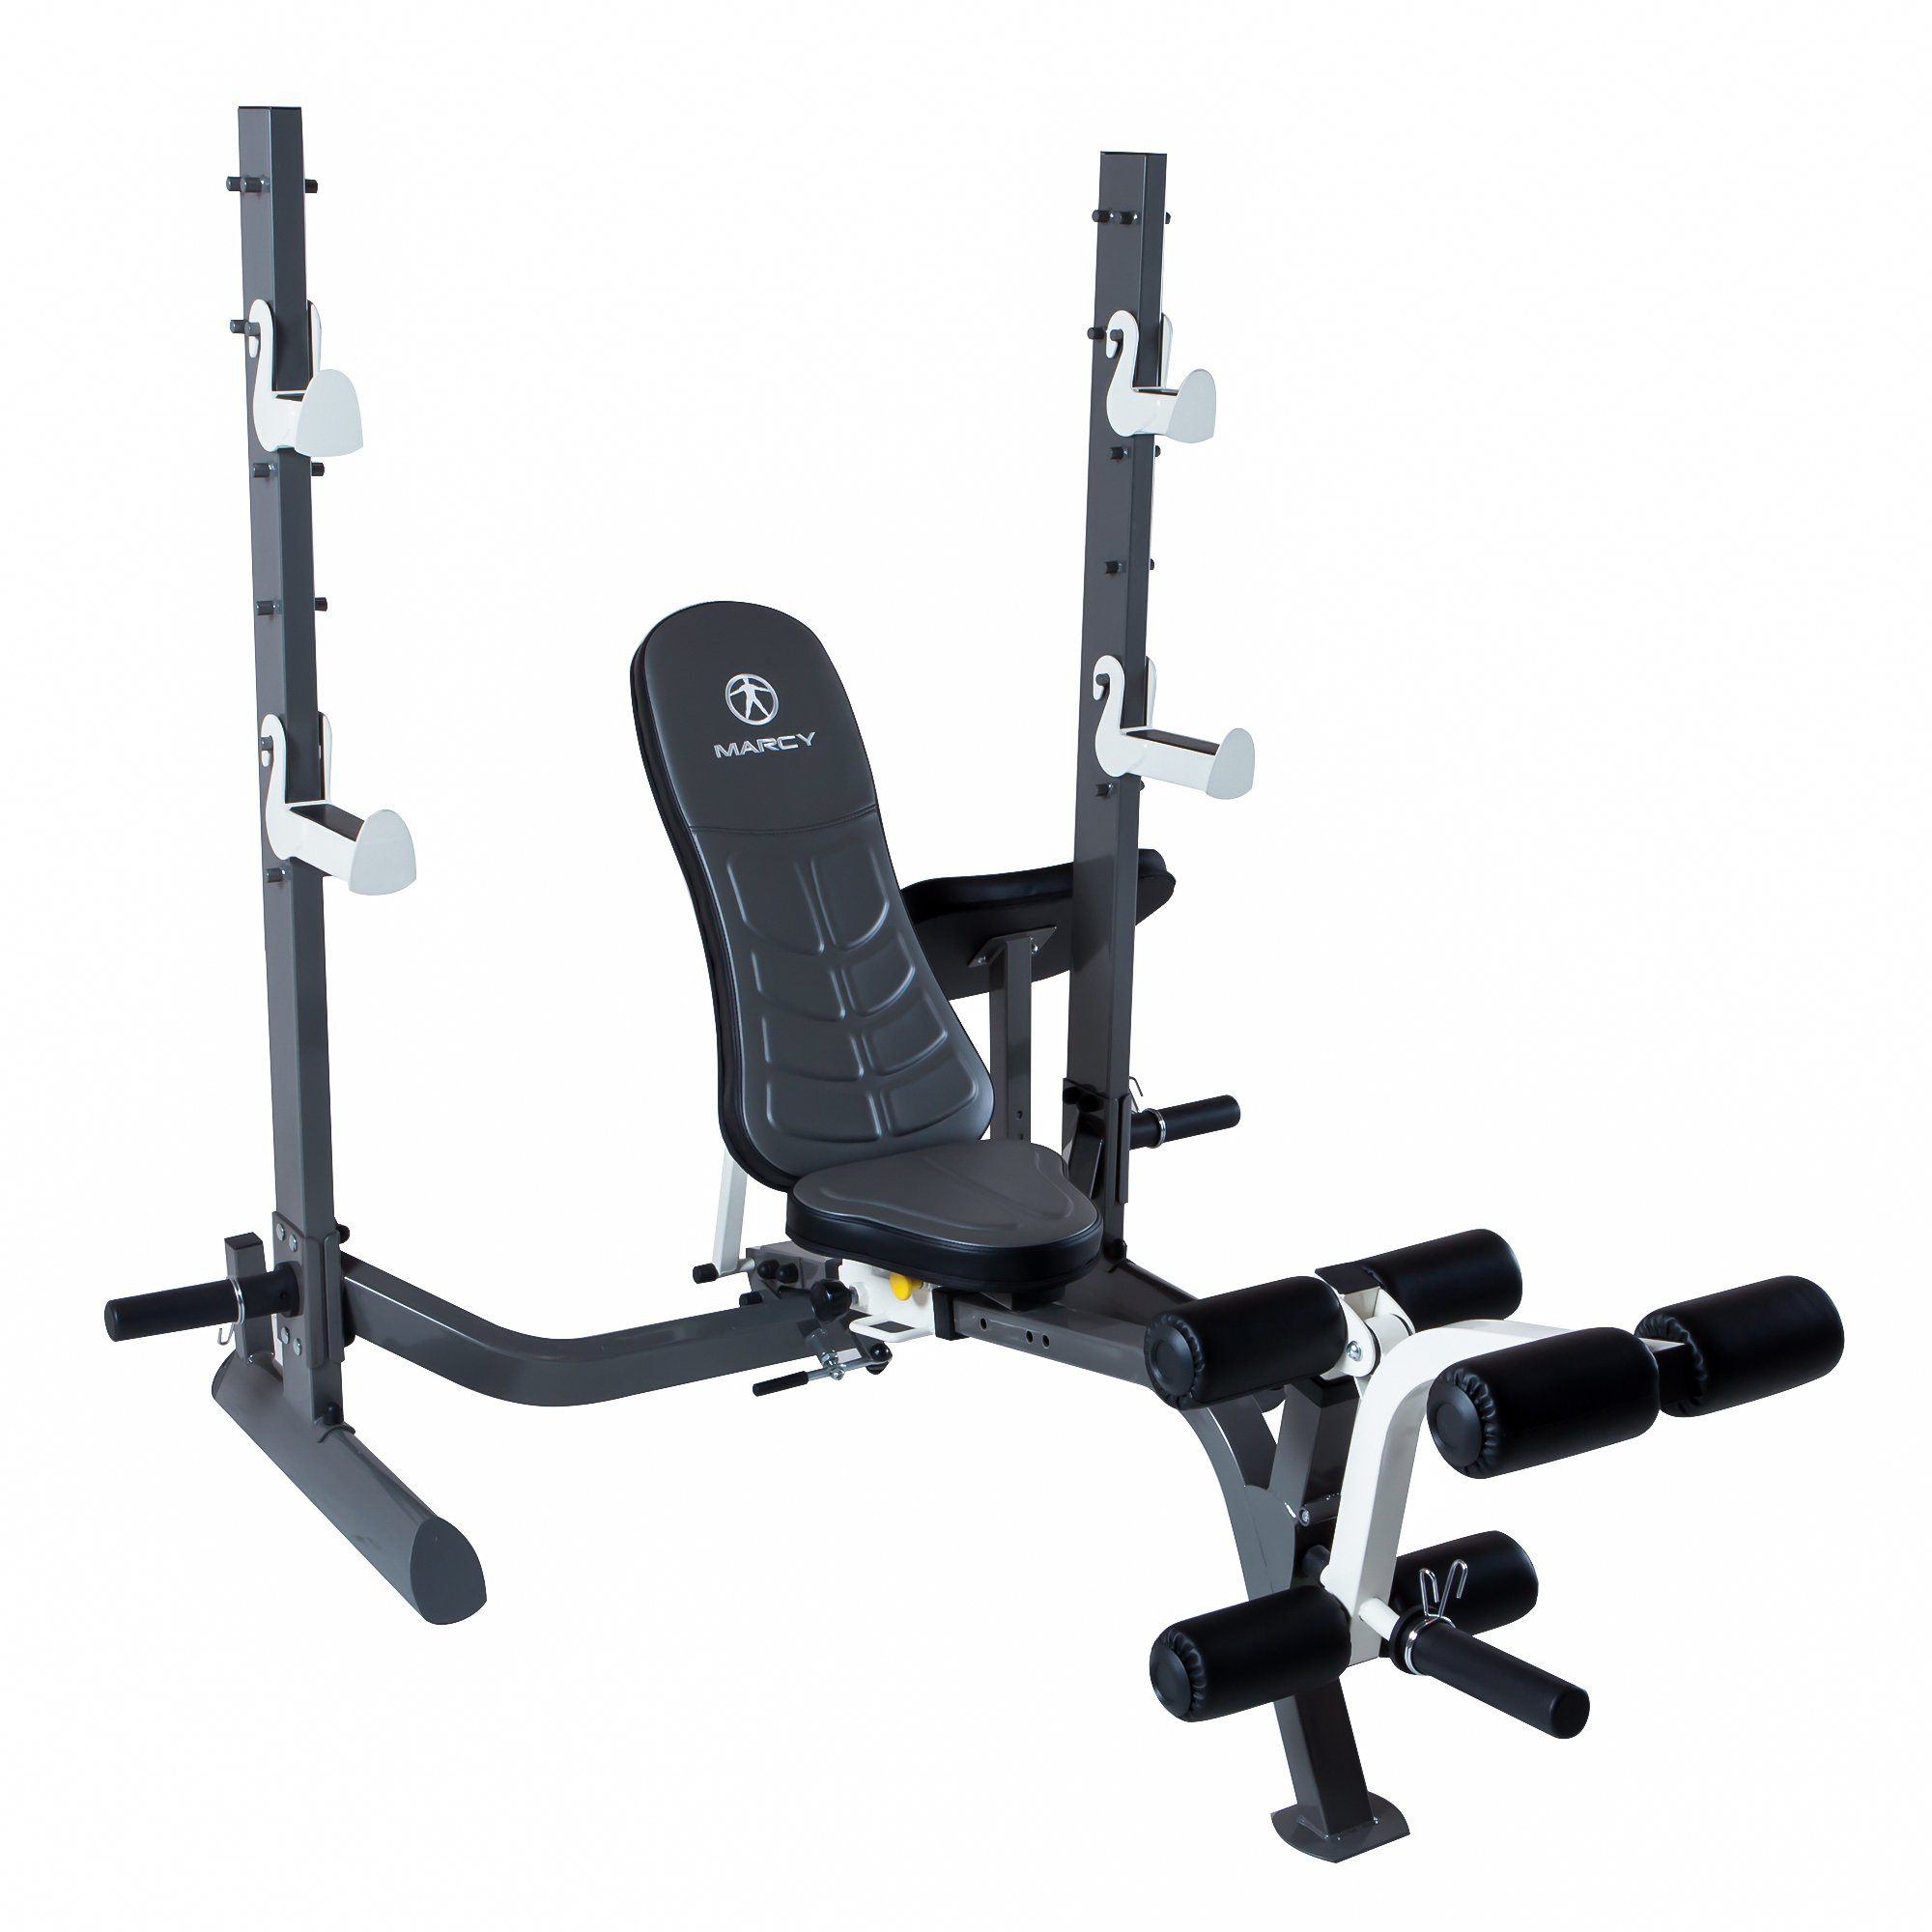 Marcy Multi-Position Foldable Olympic Weight Bench